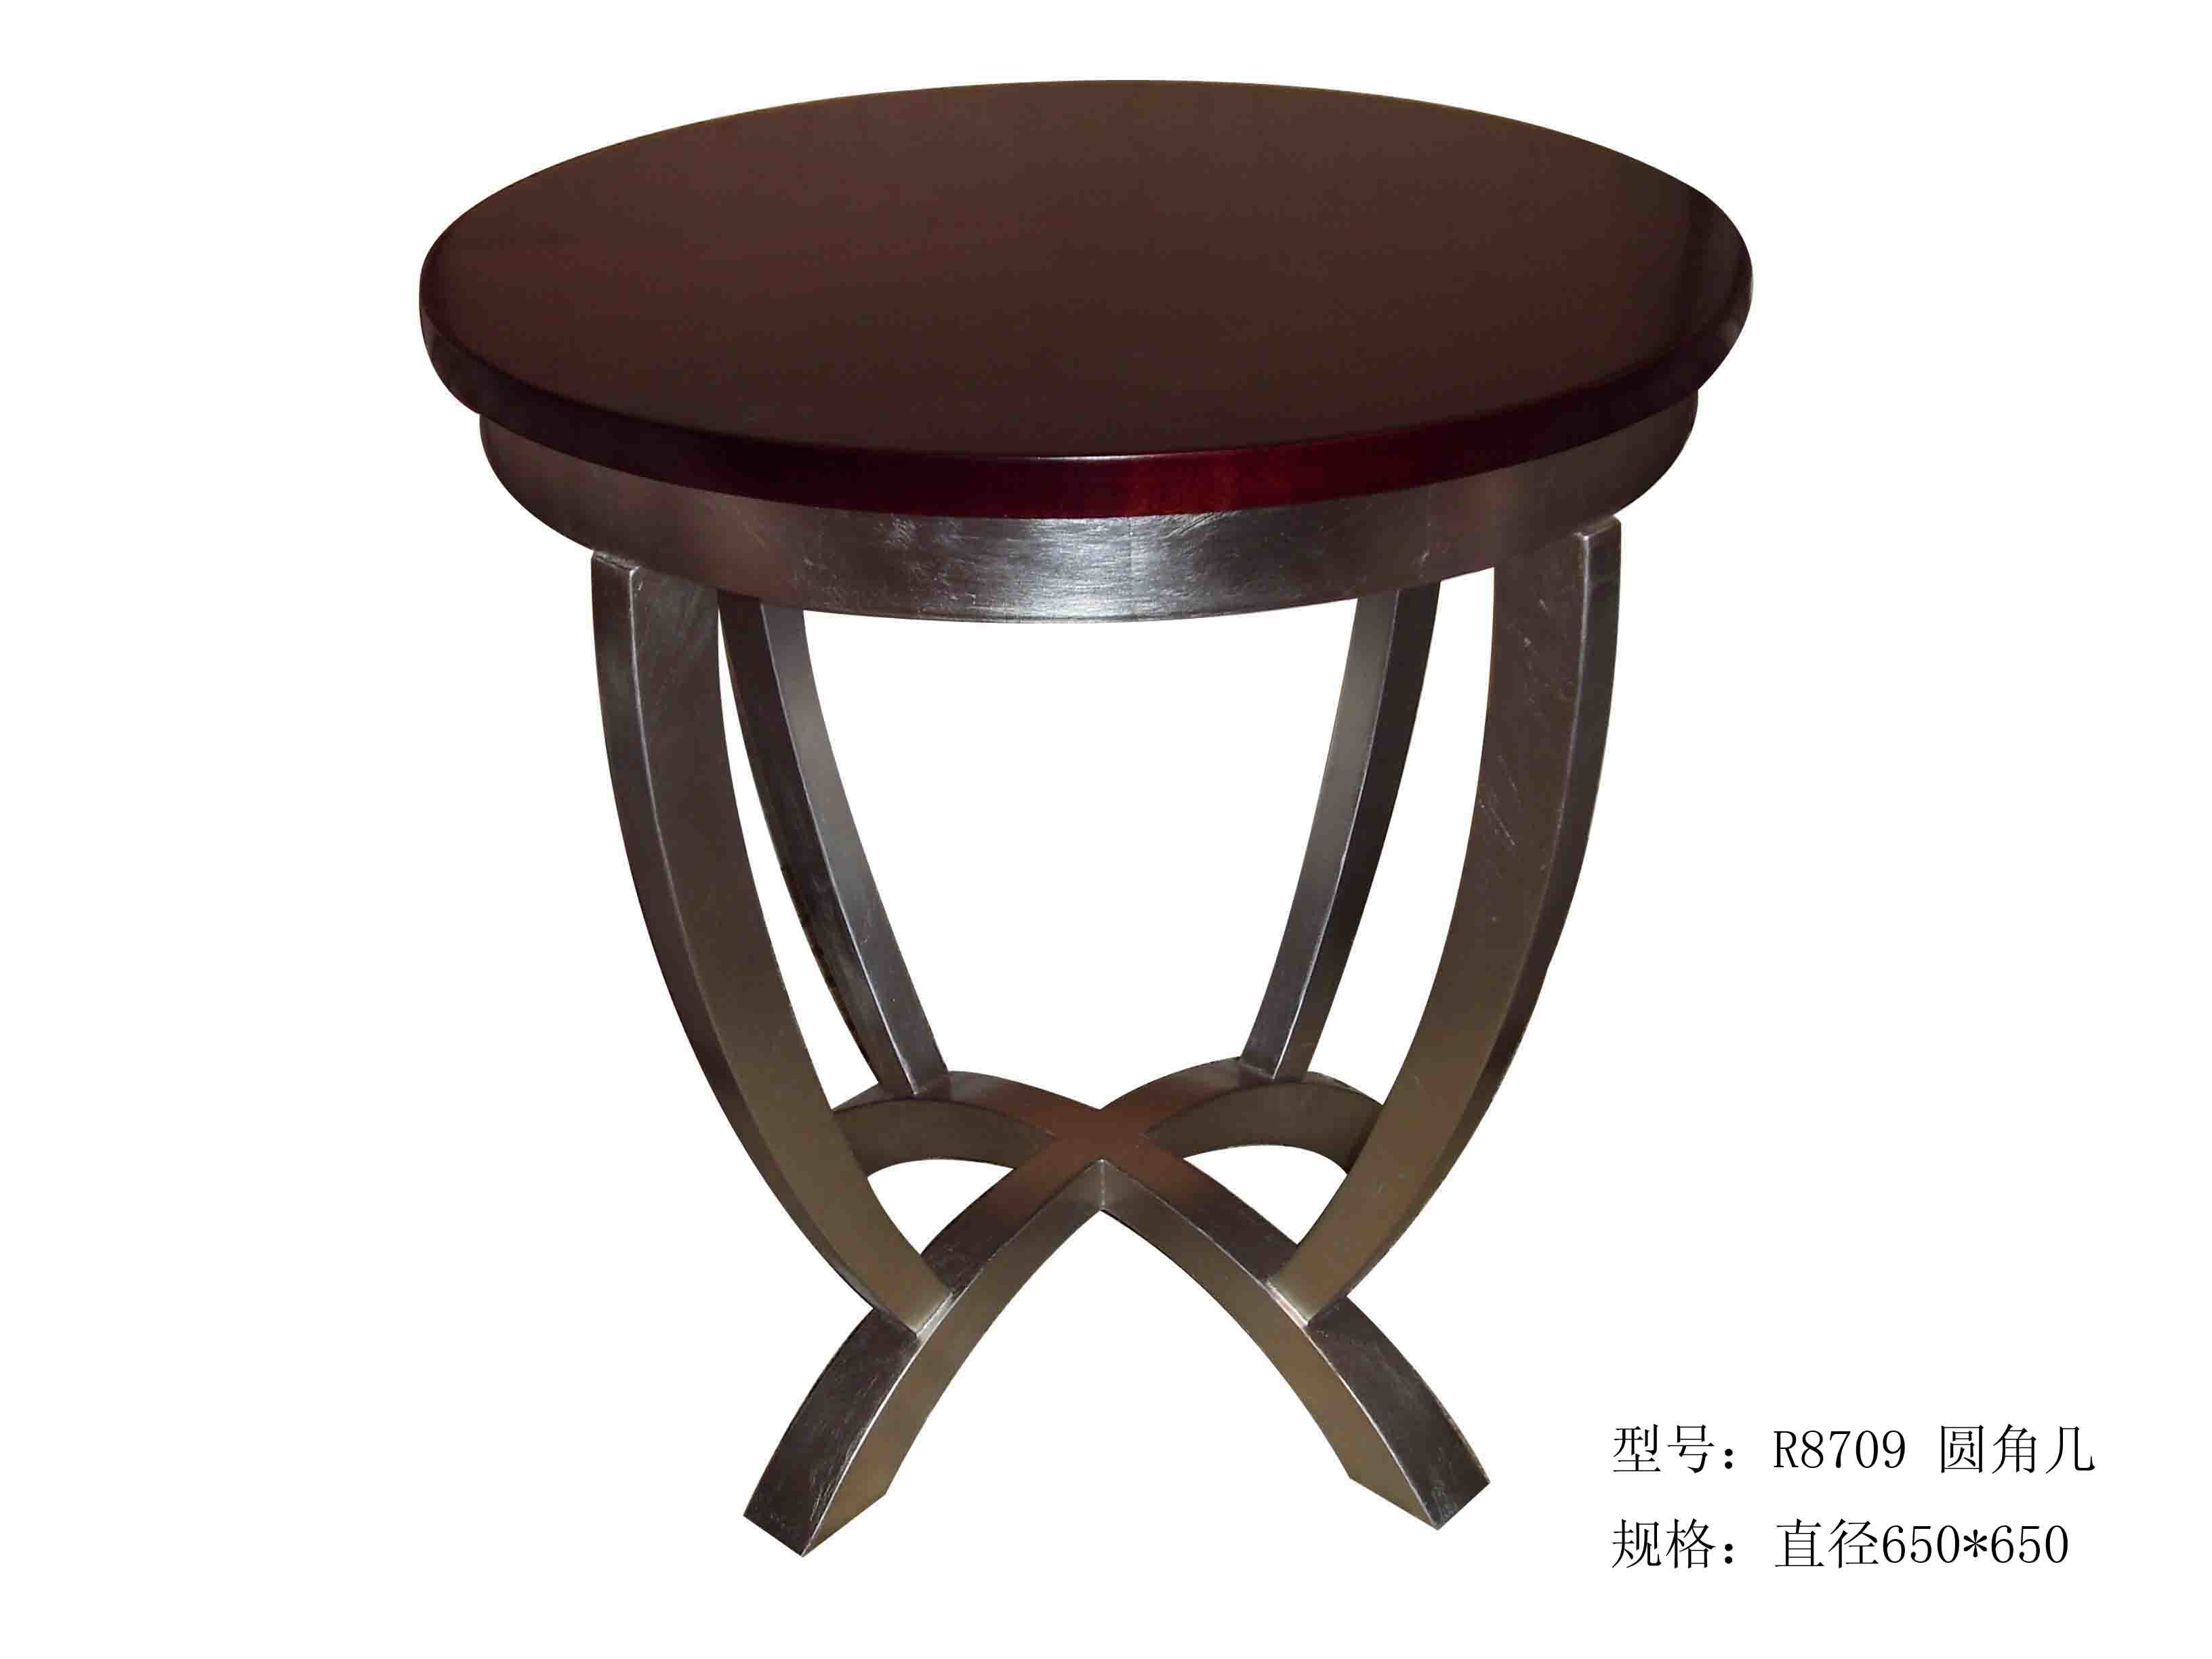 China wooden tea table r side